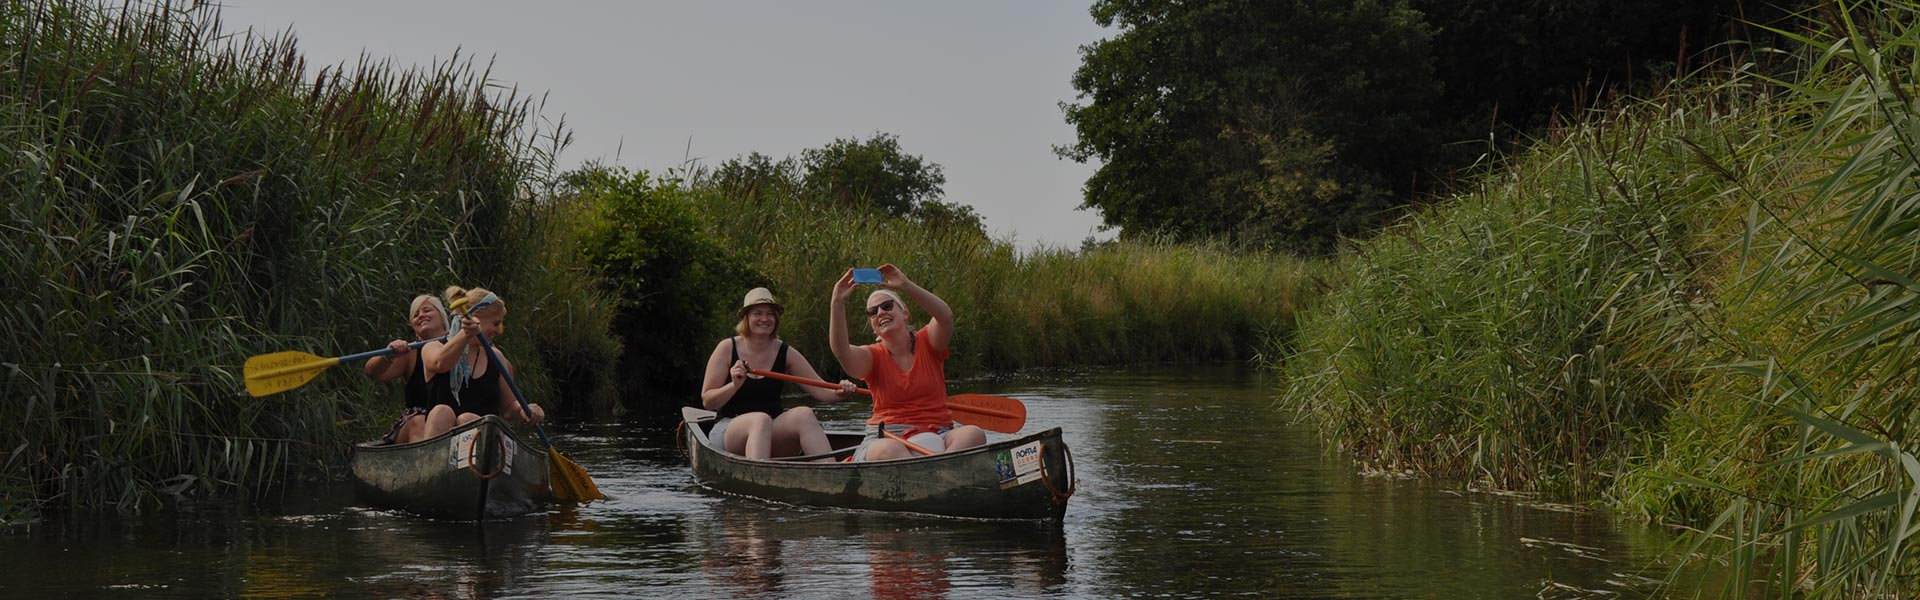 Canoeing tour from Borkel en Schaft